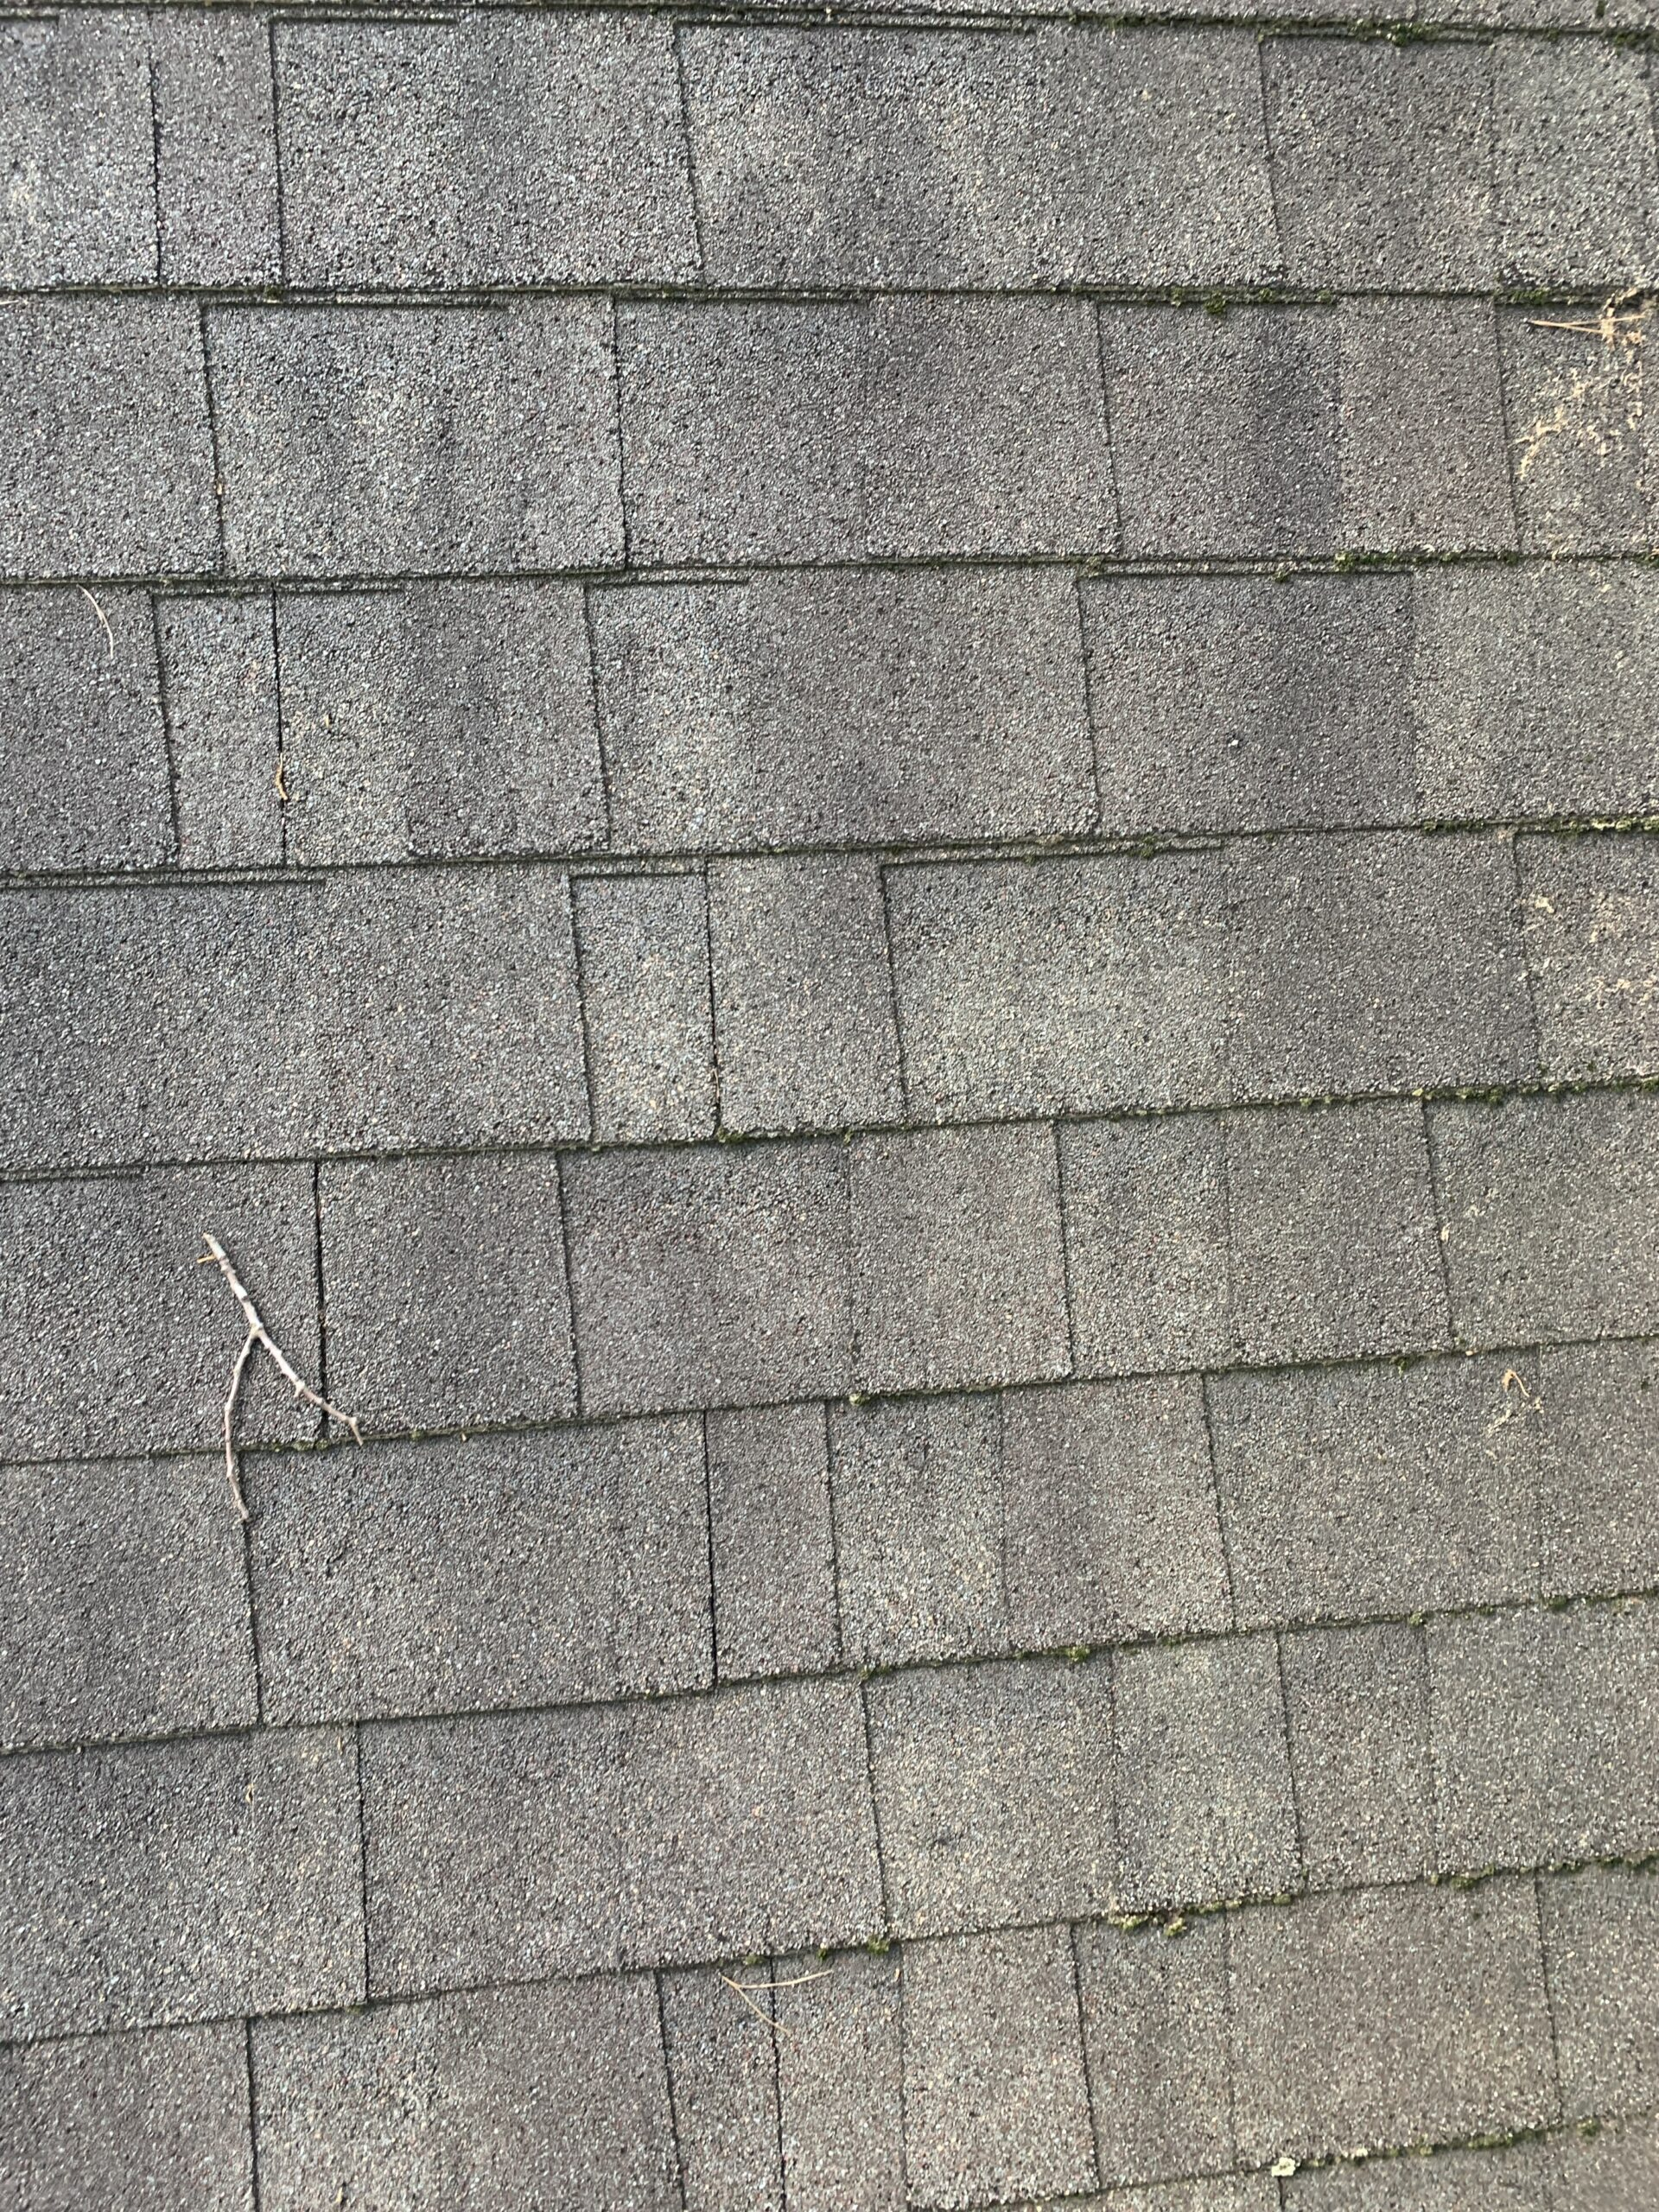 Stagger on this shingle roof is incorrectly staggered